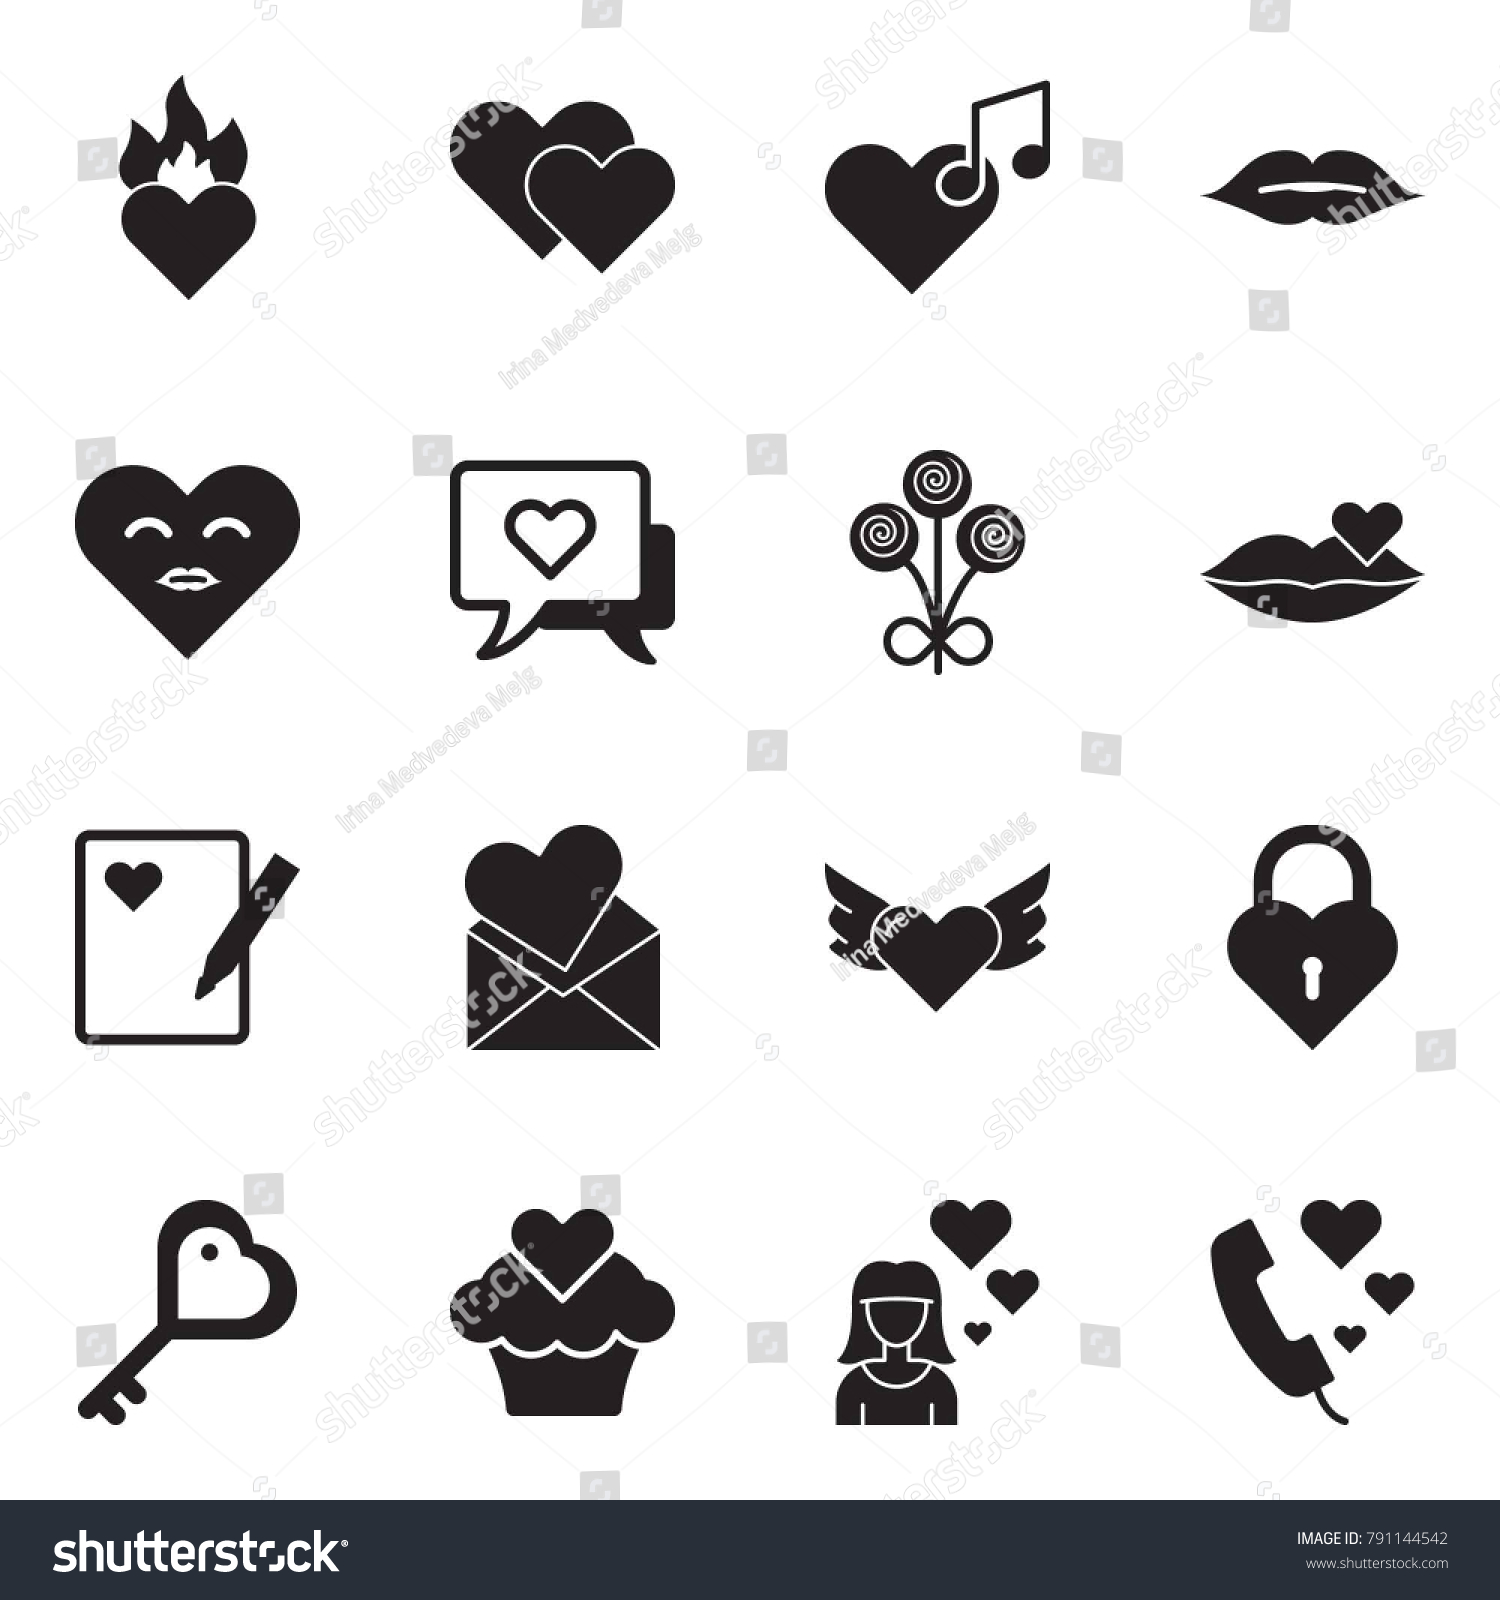 Kiss message symbol gallery symbol and sign ideas solid black vector icon set burning stock vector 791144542 solid black vector icon set burning heart biocorpaavc